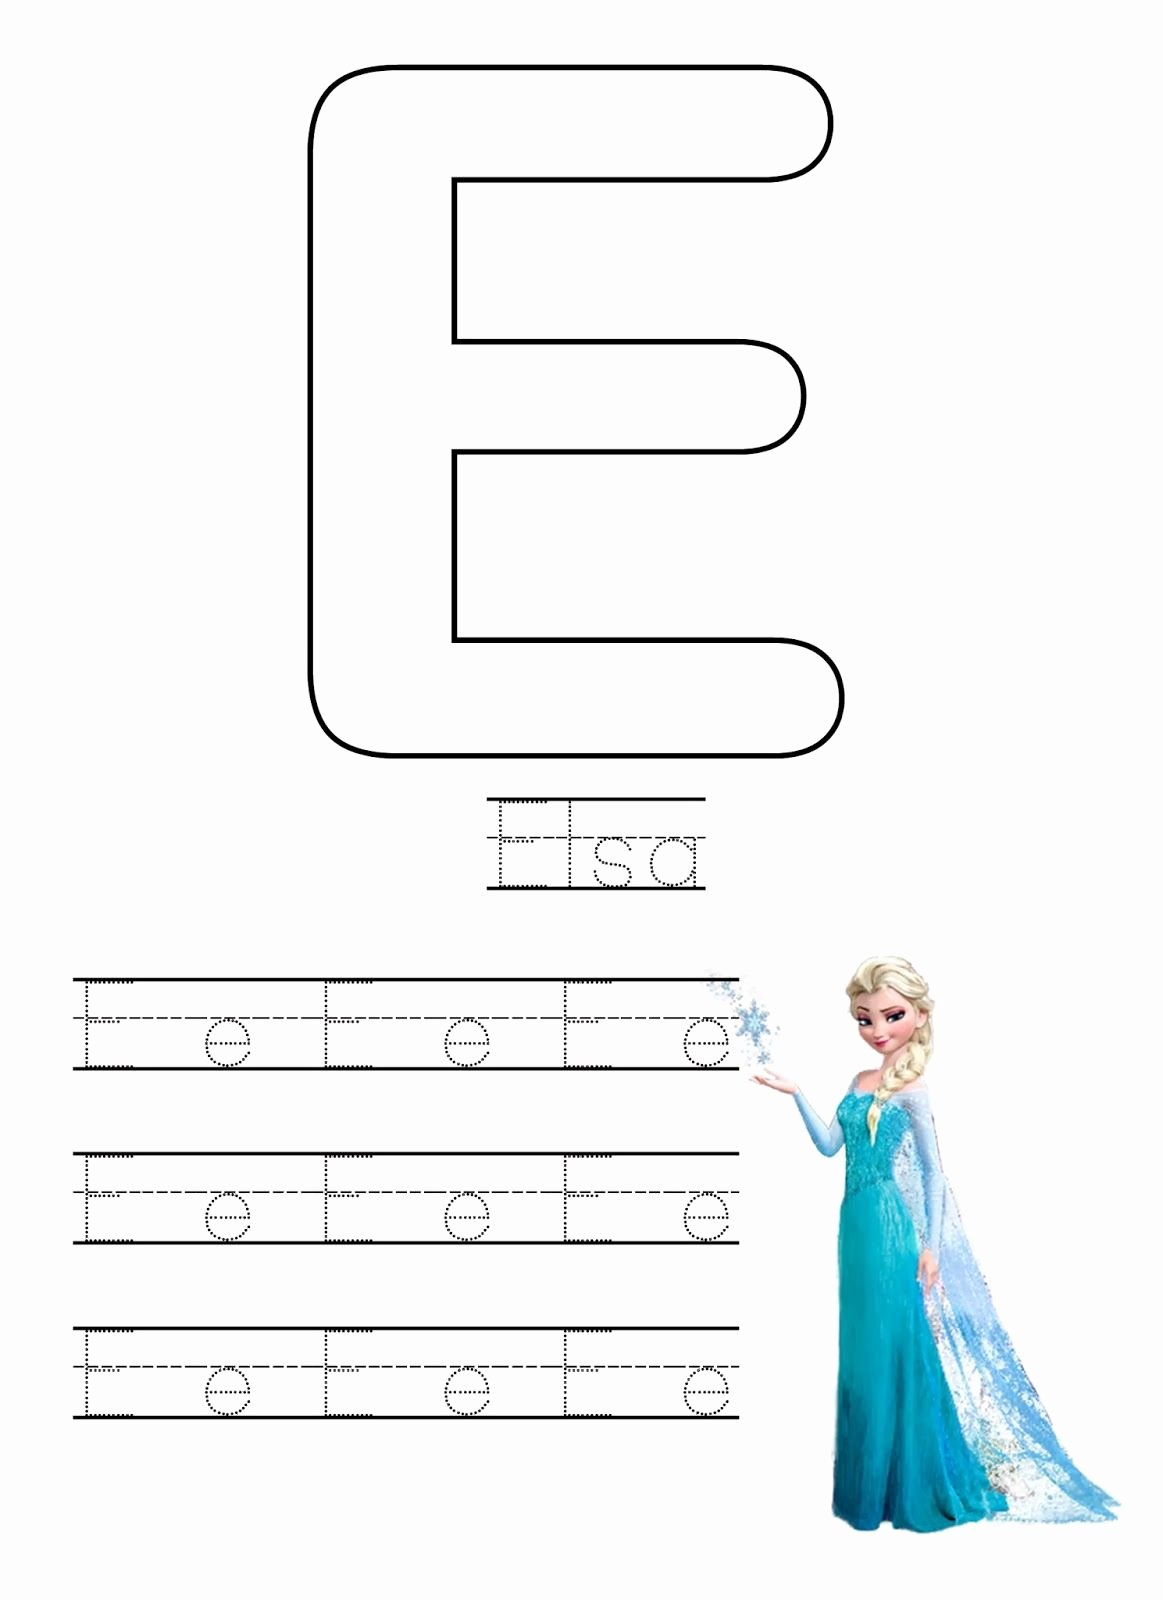 Frozen Worksheets for Preschoolers Best Of Free Frozen Writing Worksheets